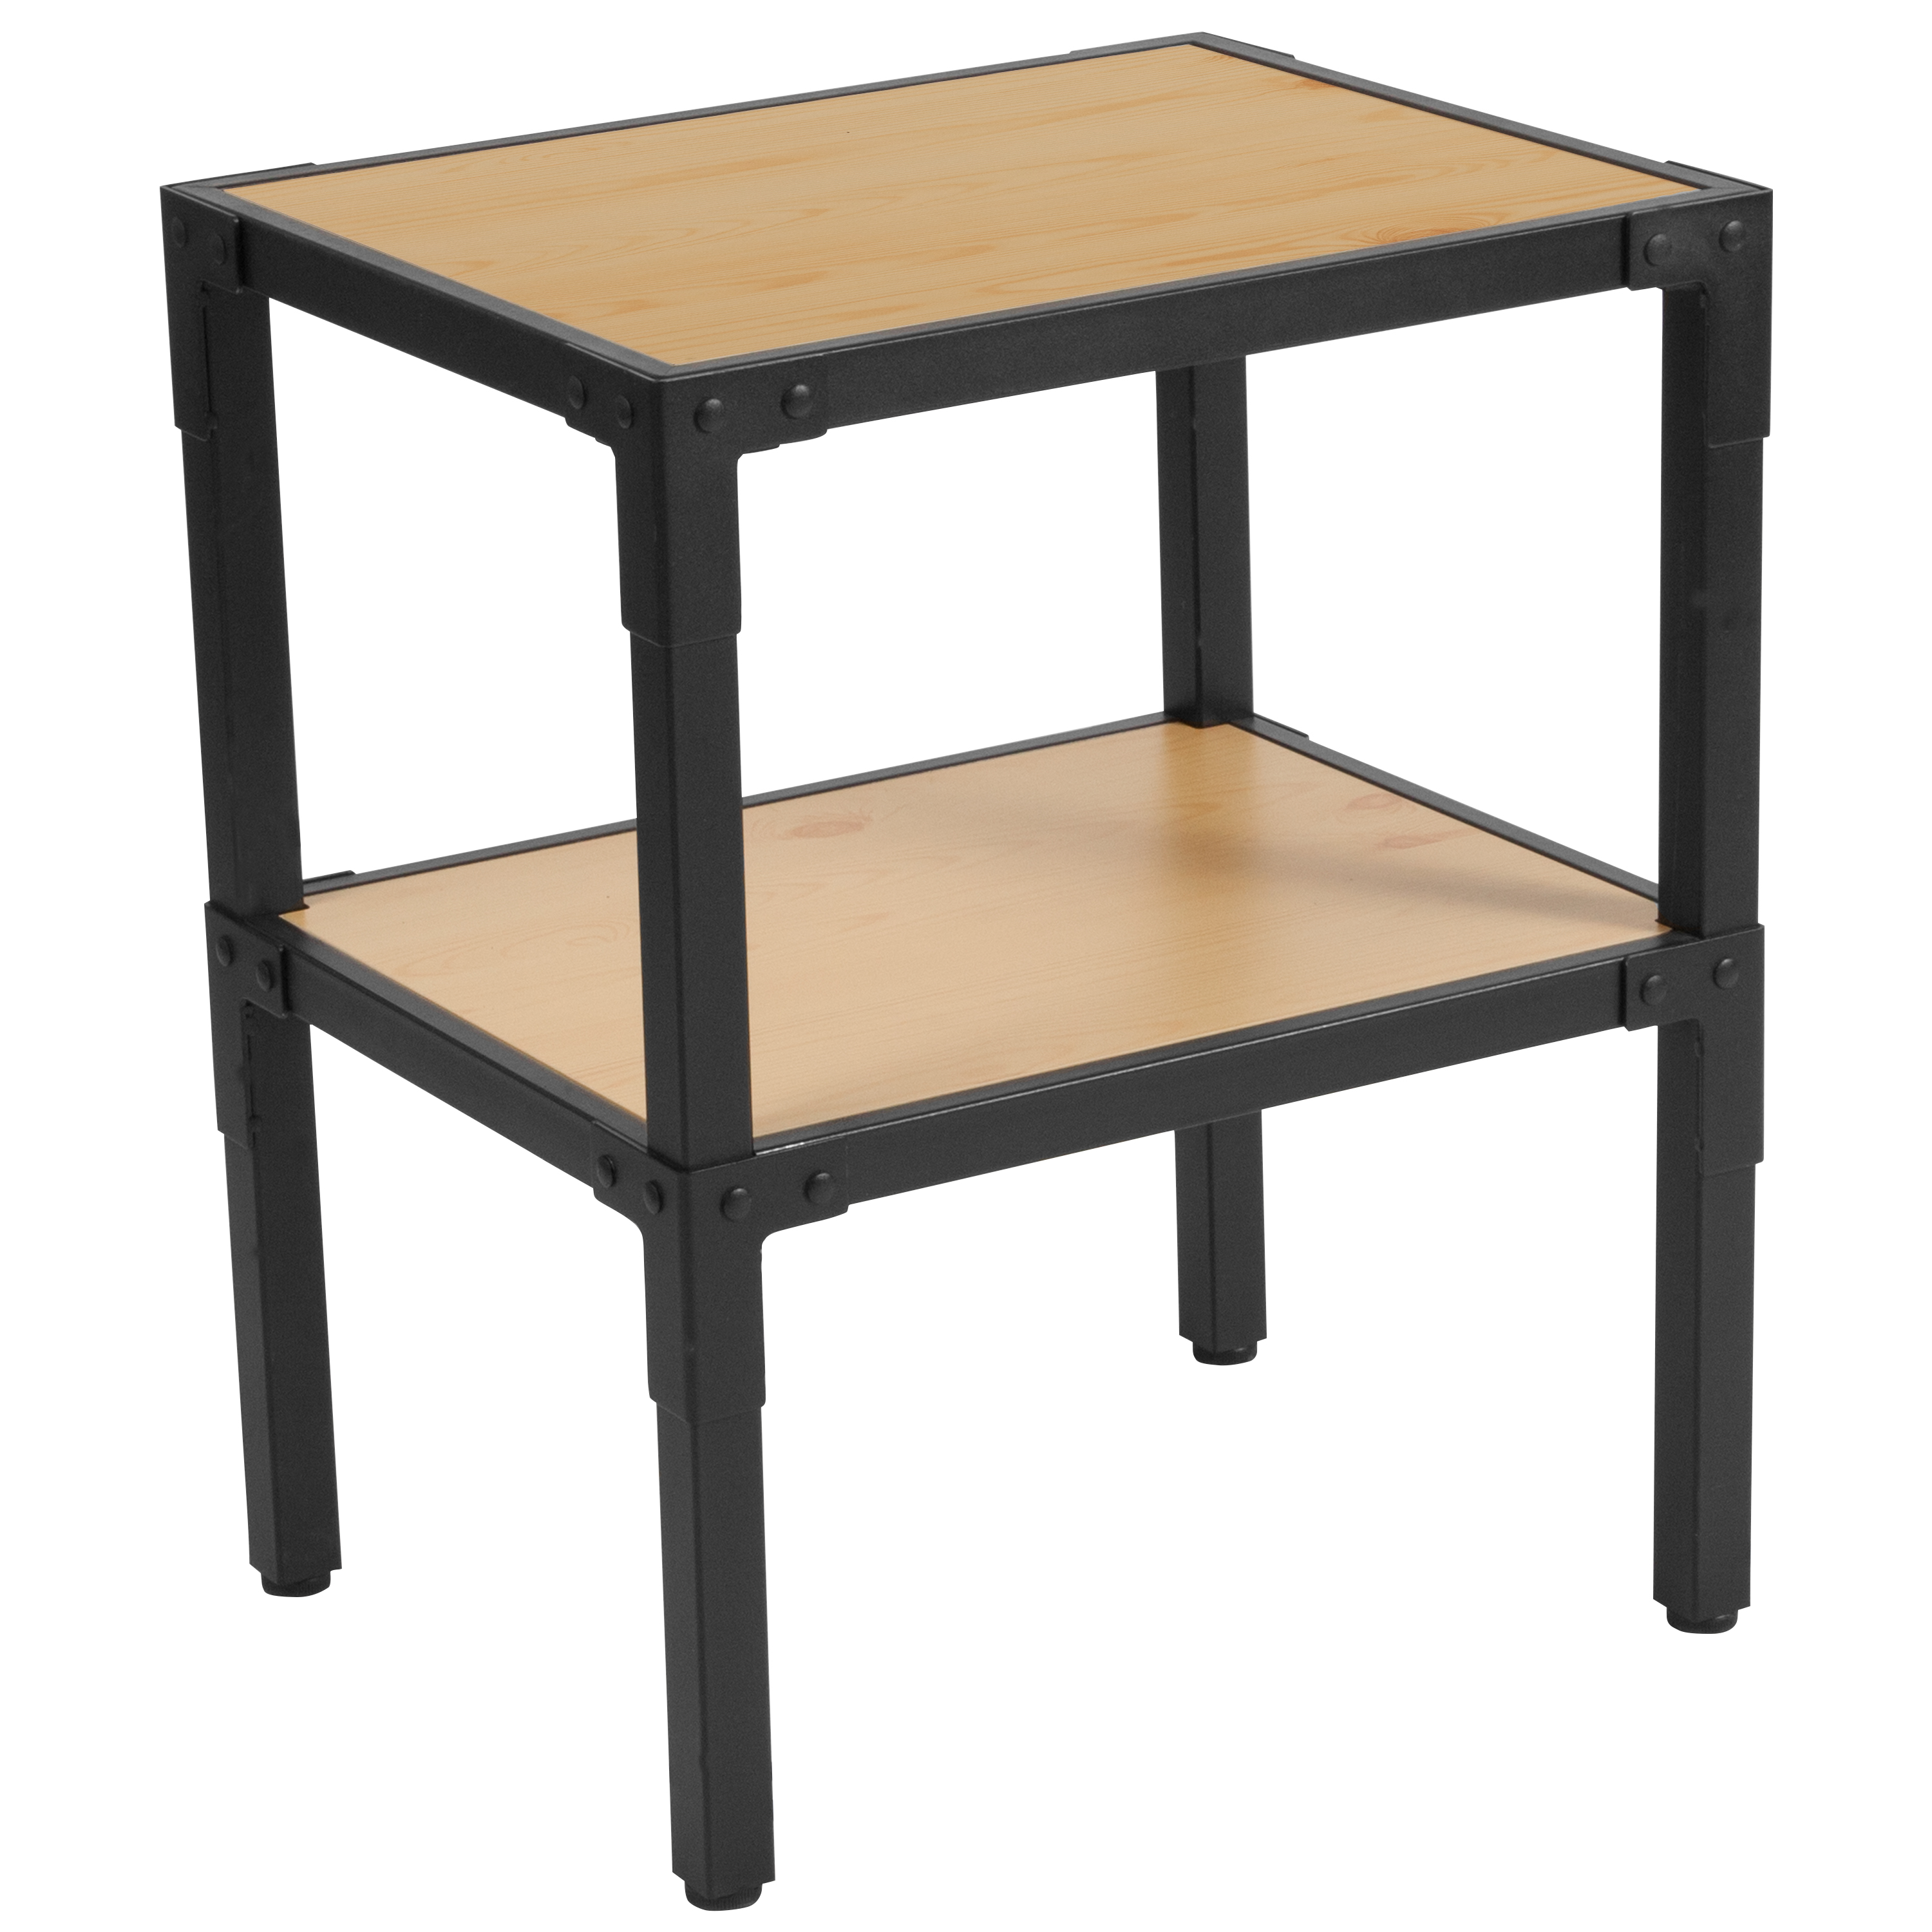 Flash Furniture Holmby Bedroom Collection Nightstand with Black Metal Legs in Knotted Pine Wood Grain Finish